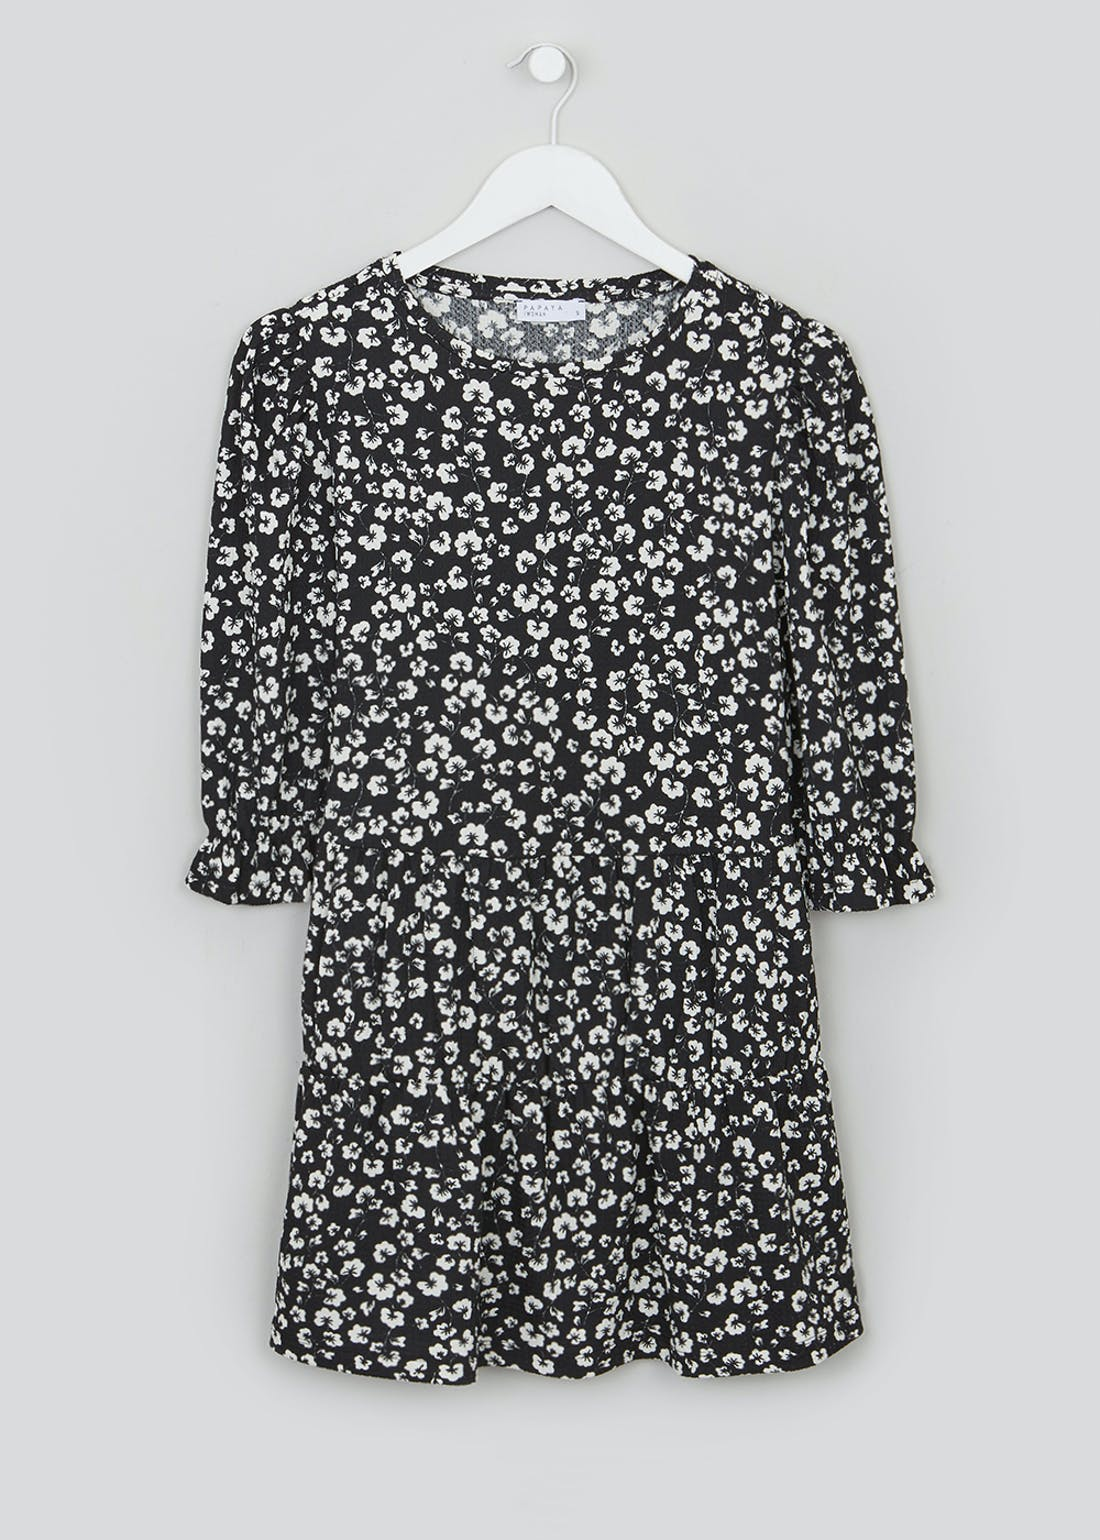 Floral Textured Tunic Top